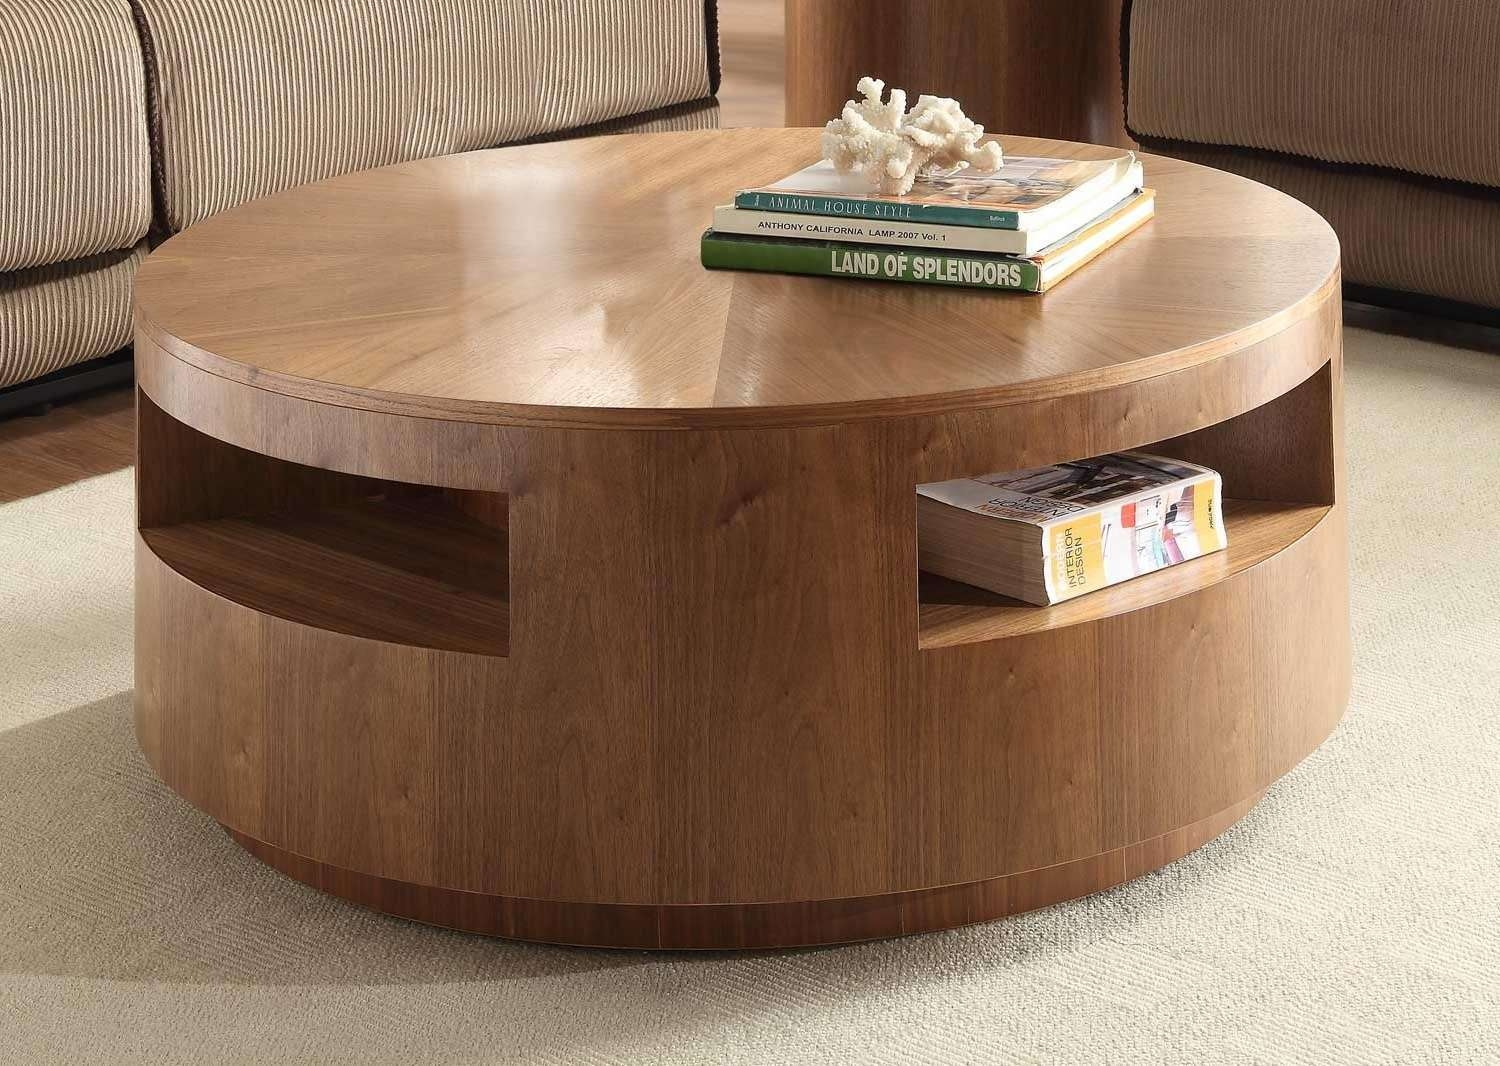 Most Current Round Coffee Table Storages Pertaining To Captivating Round Coffee Tables With Storage Images Inspiration (View 14 of 20)